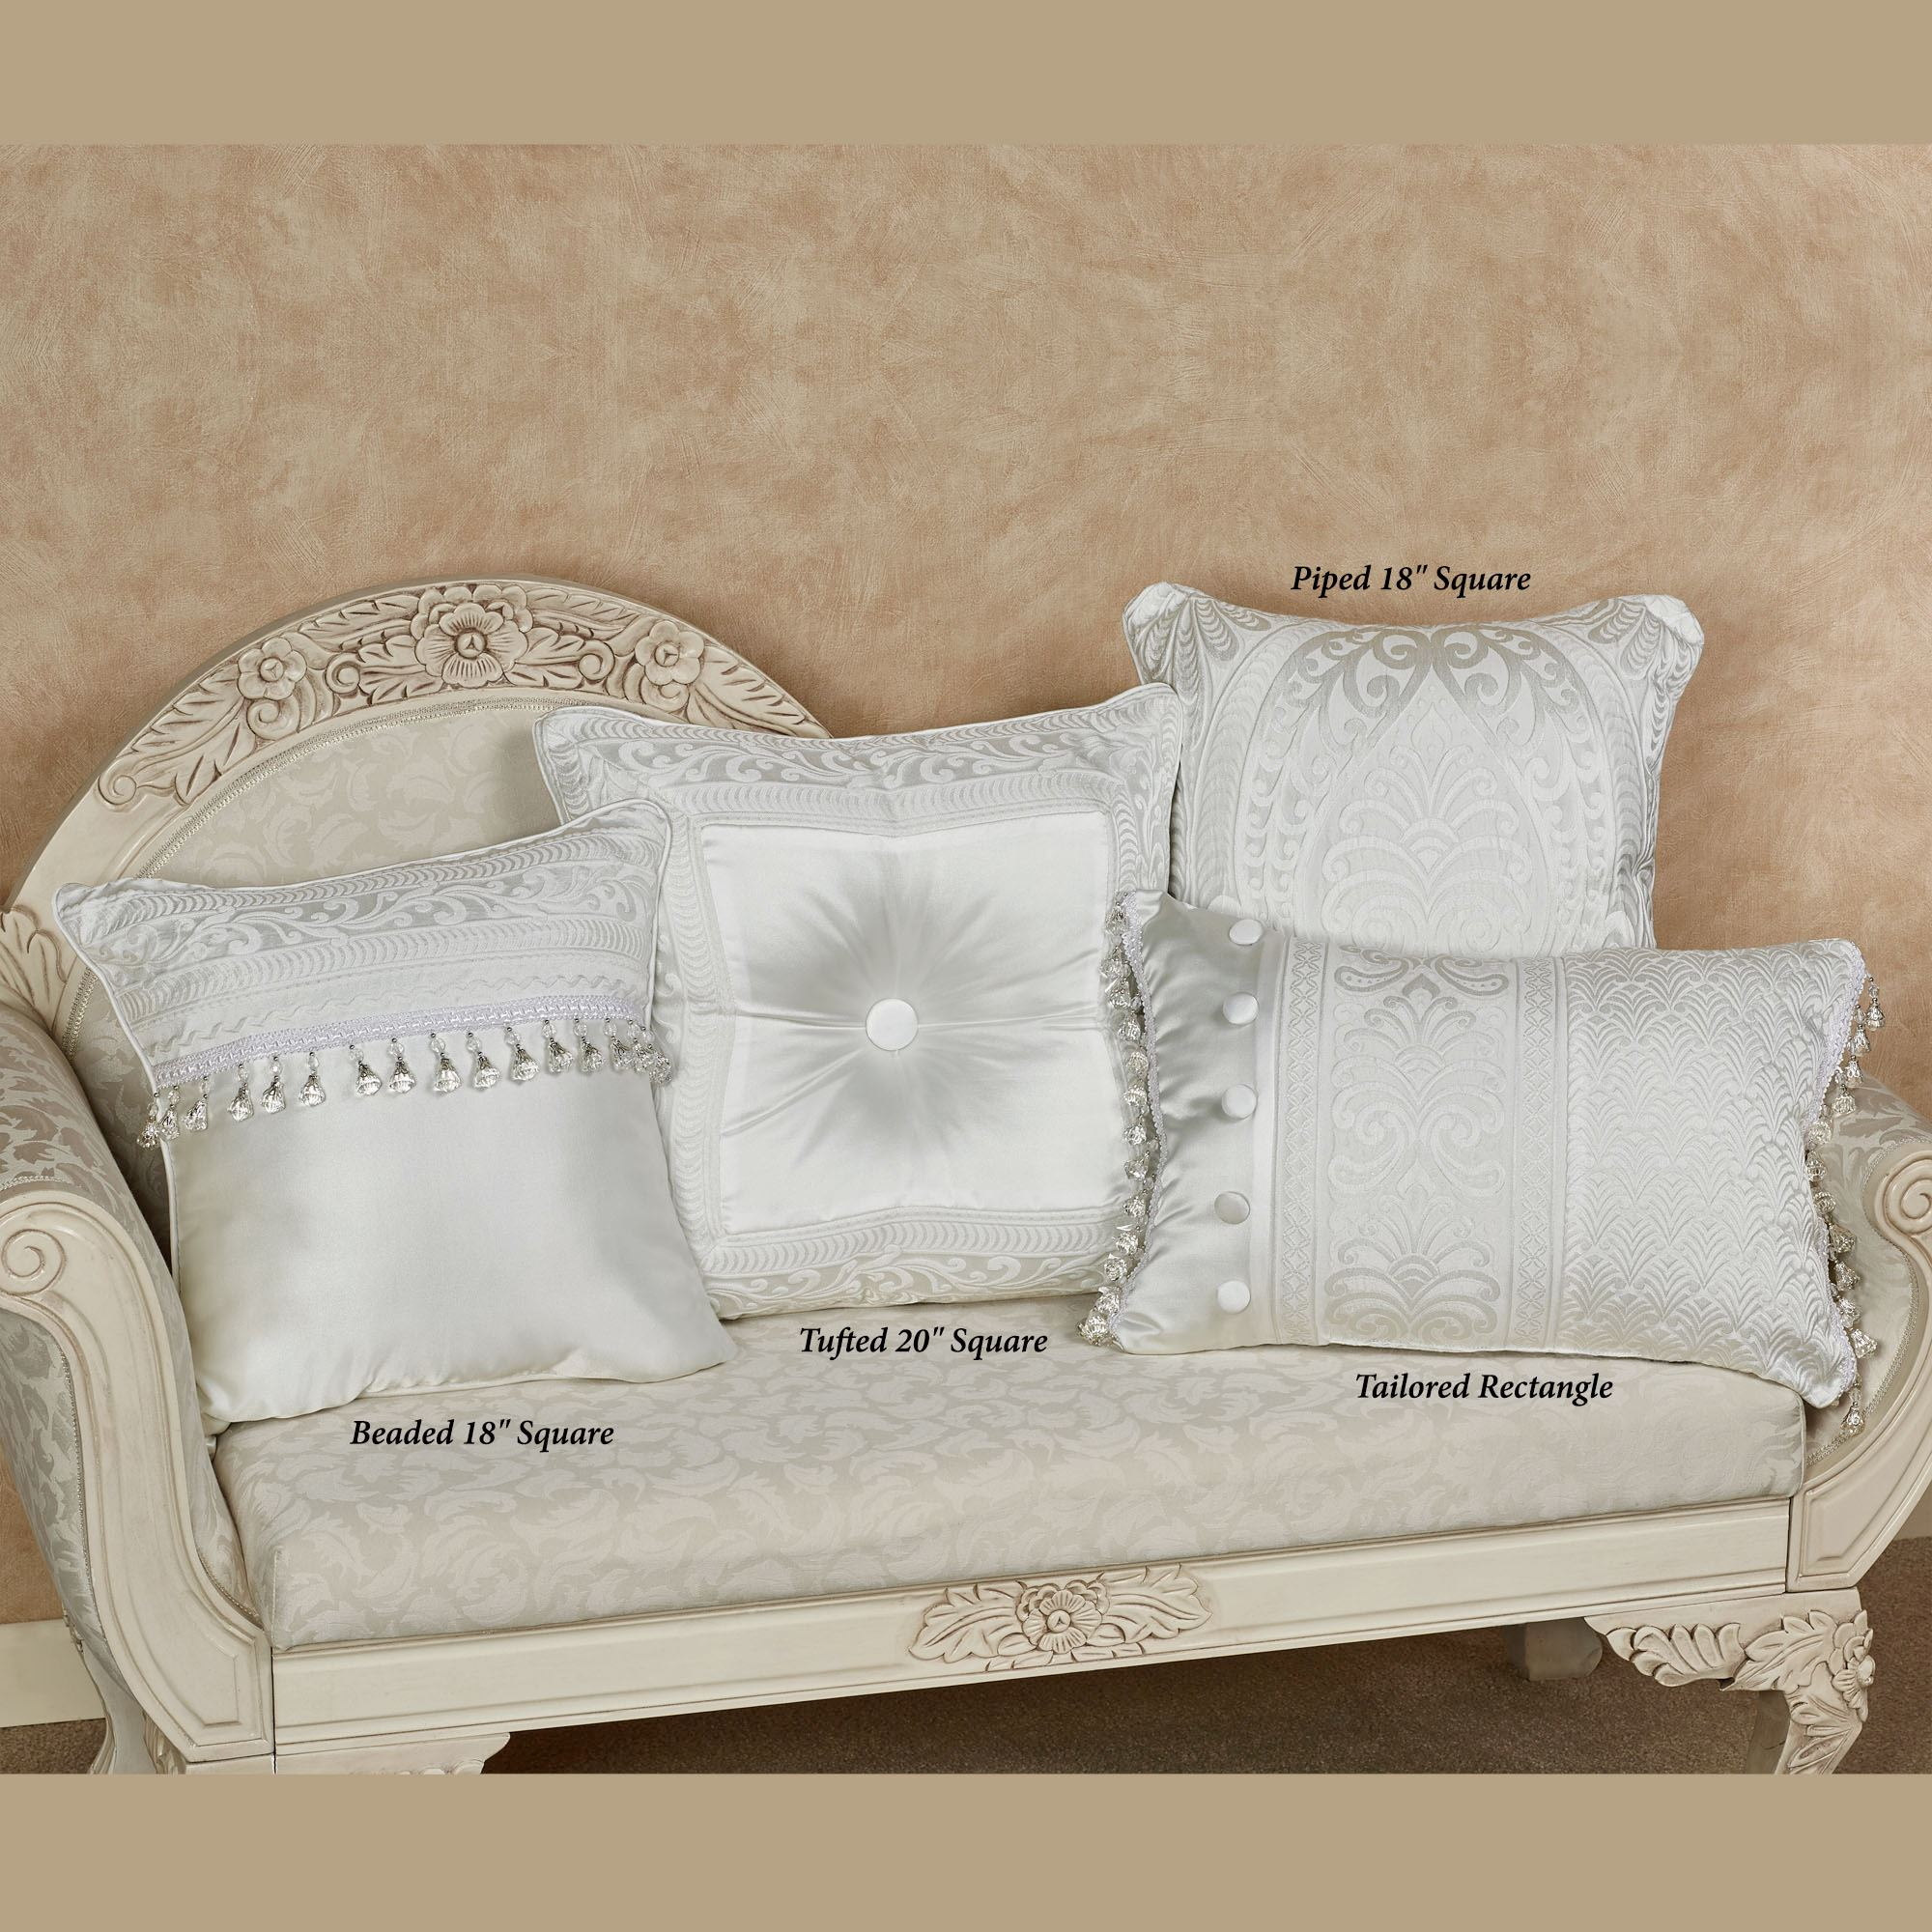 Decorative Pillows And Throws Touch Of Class ~ How To Coordinate Throw Pillows For Sofa And Chairs